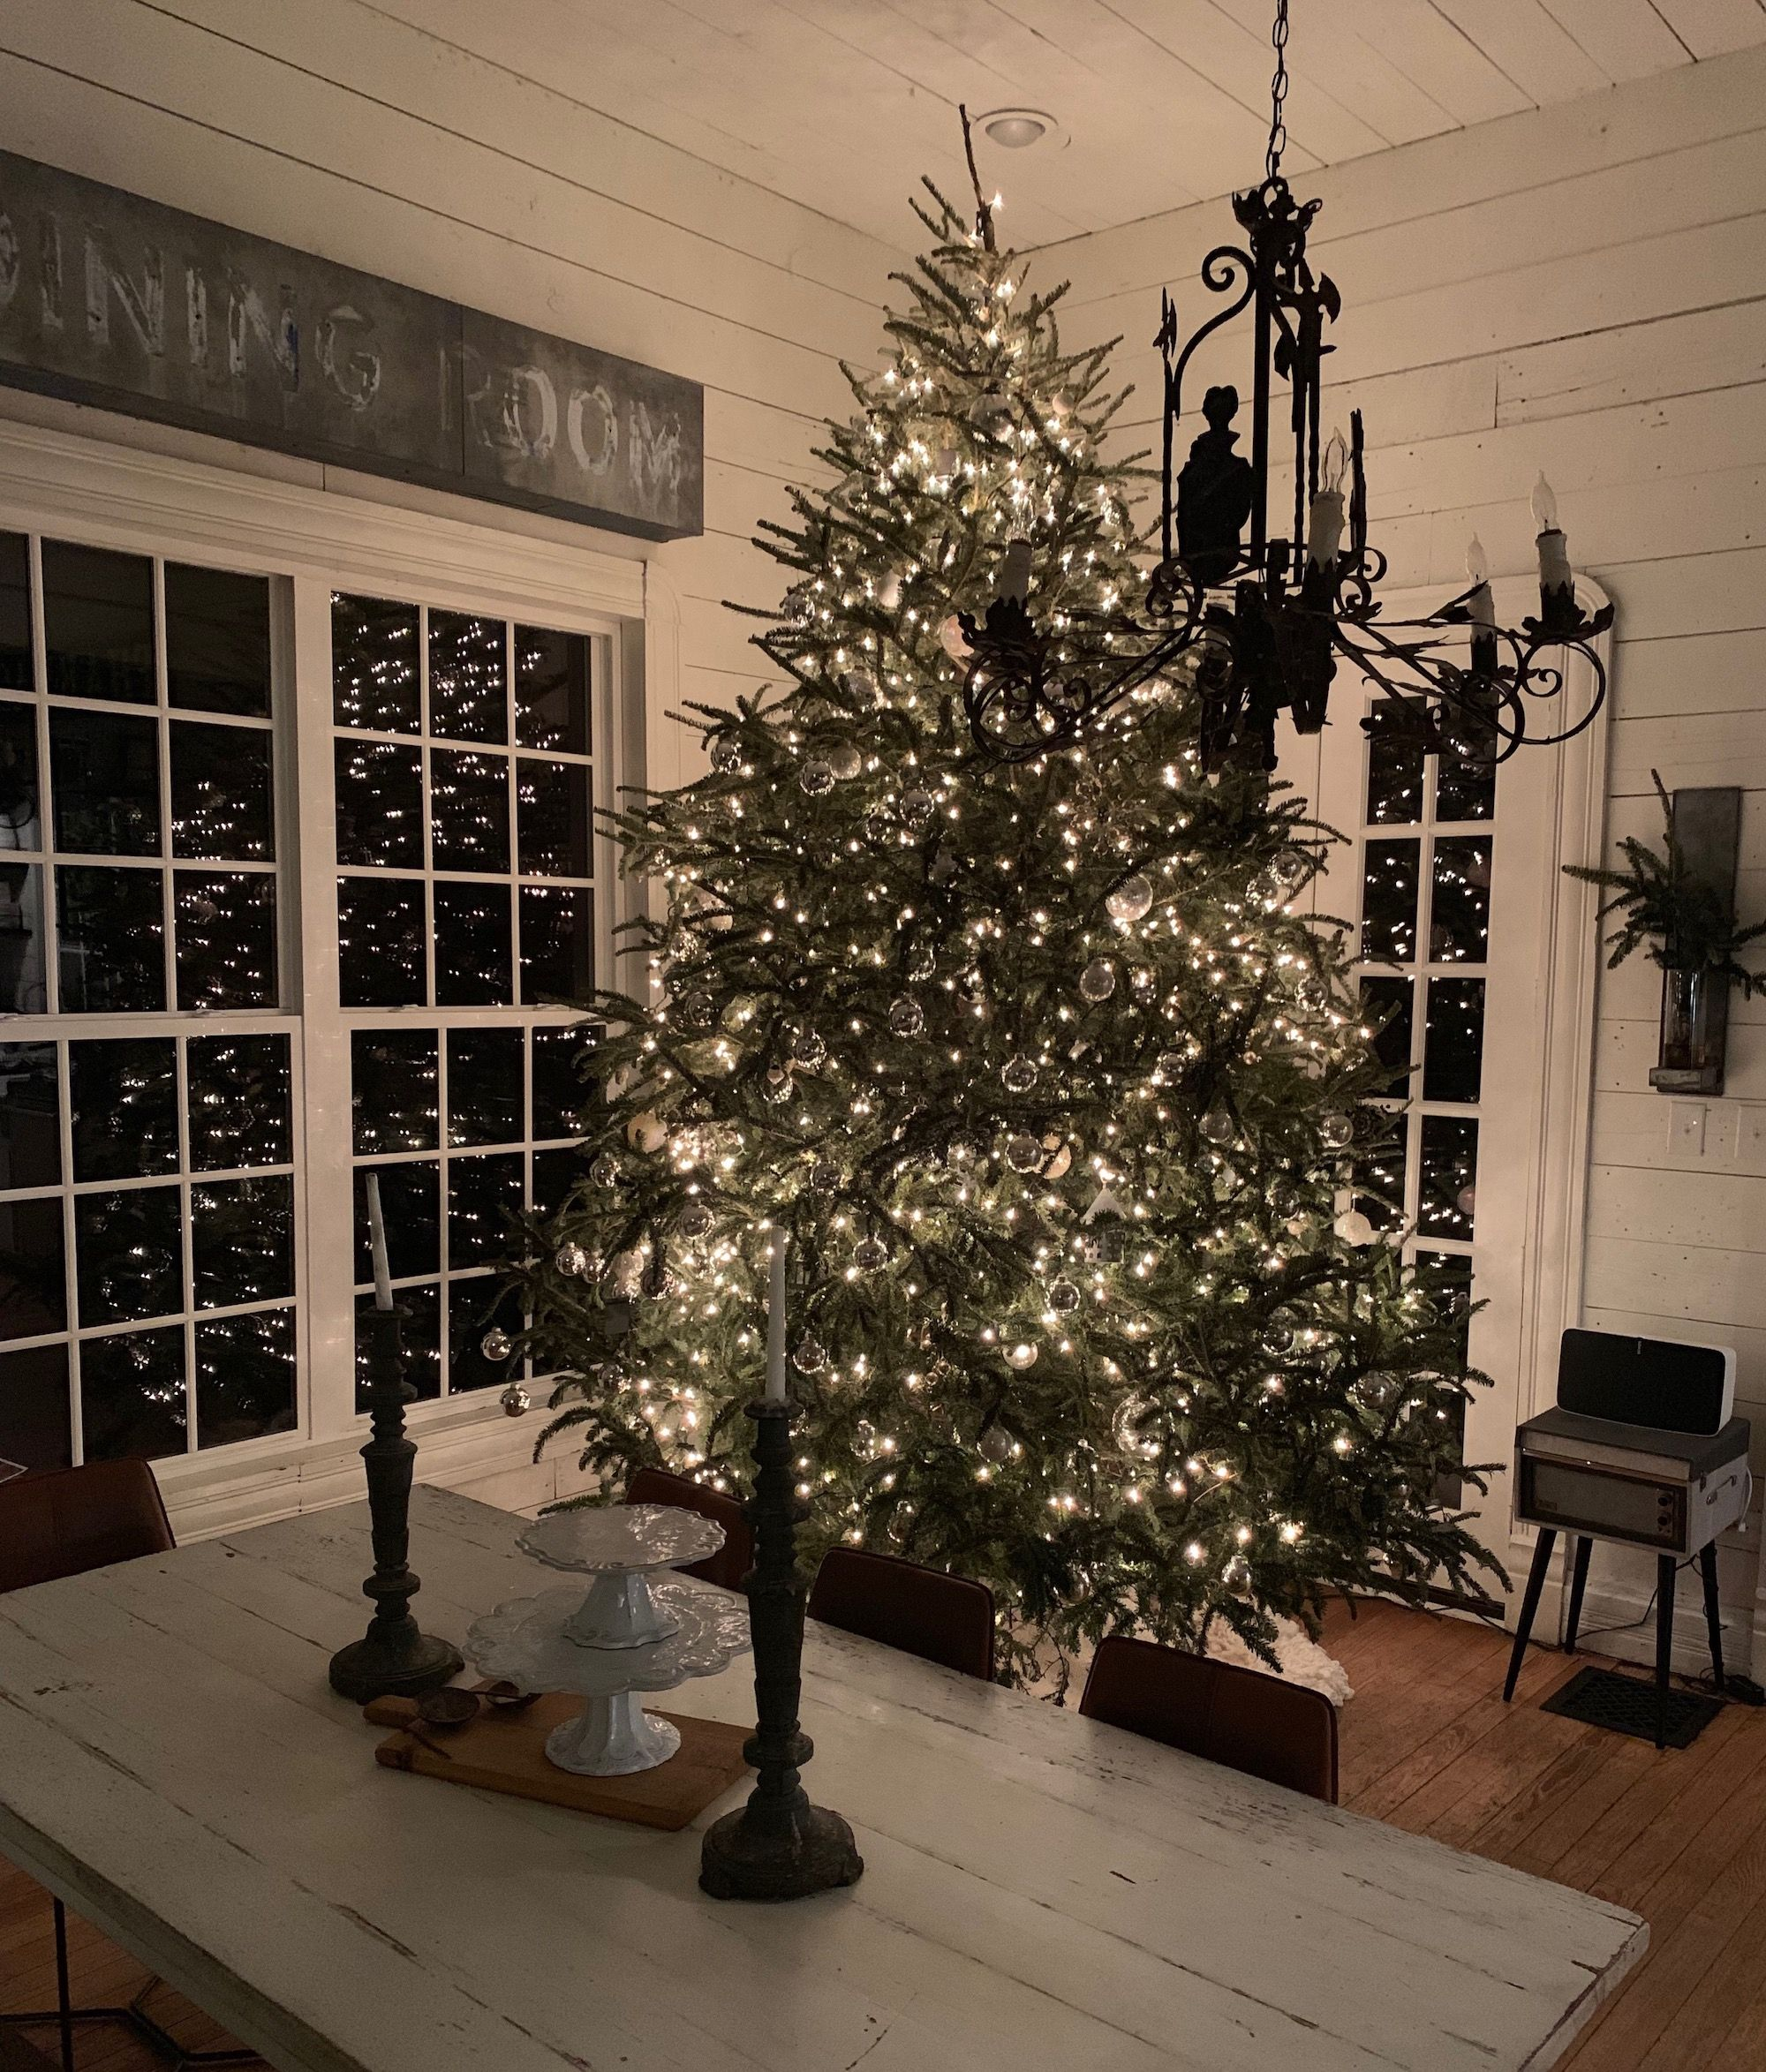 The Tradition Of Christmas Trees: Embracing A New Kind Of Christmas